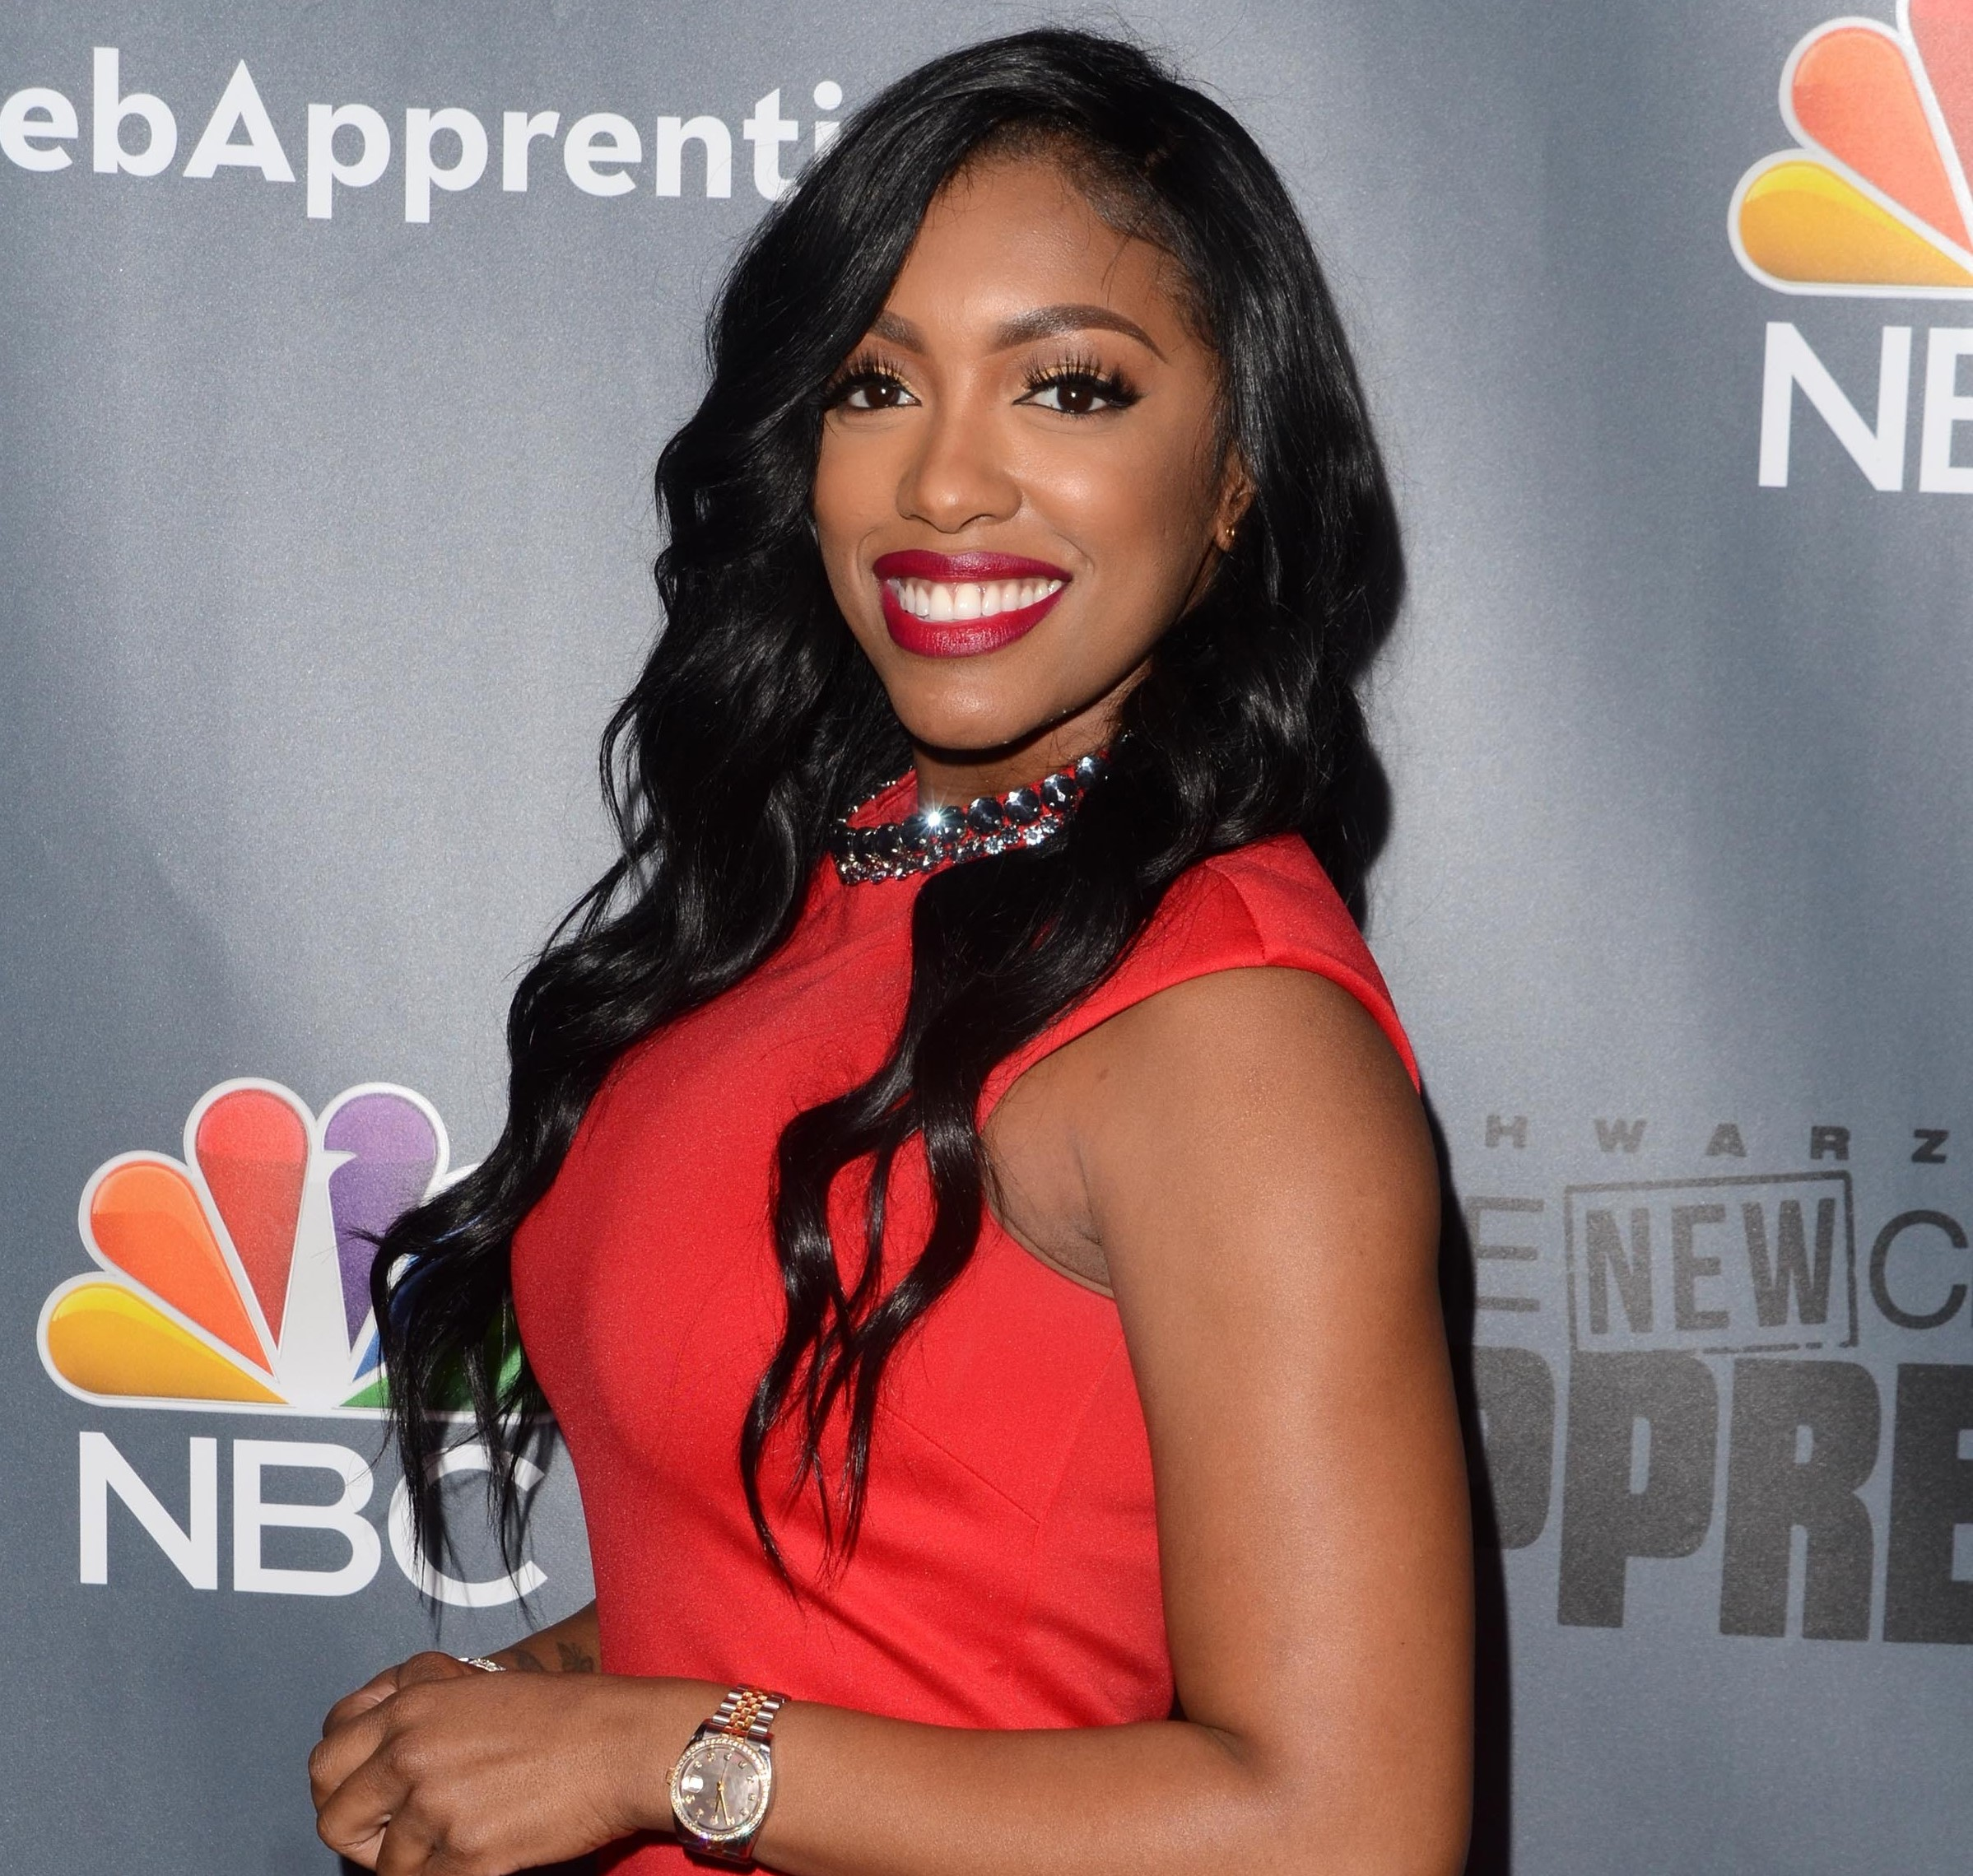 Porsha Williams Red Dress Celebrity Apprentice Carpet